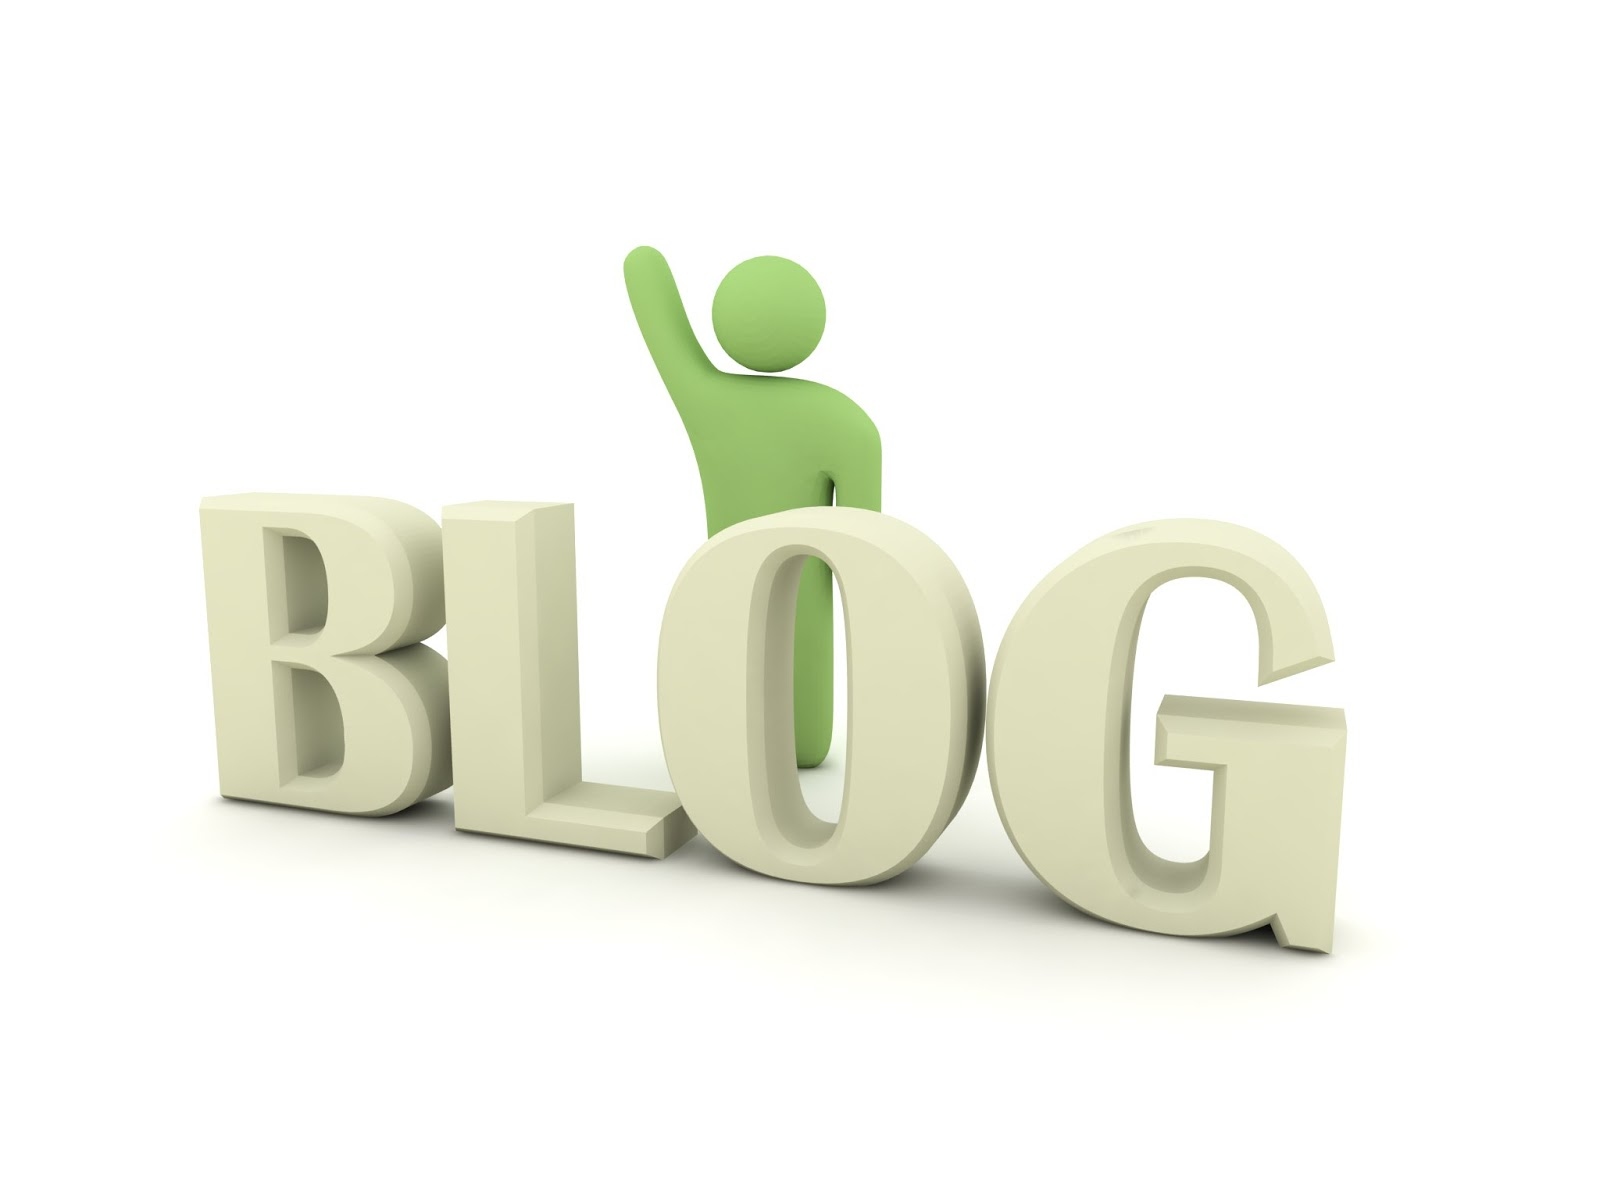 blog,content,benefits,seo,search,web,engines,fresh,rss,fresh content,search engines,benefits blog,blog software,comments trackbacks